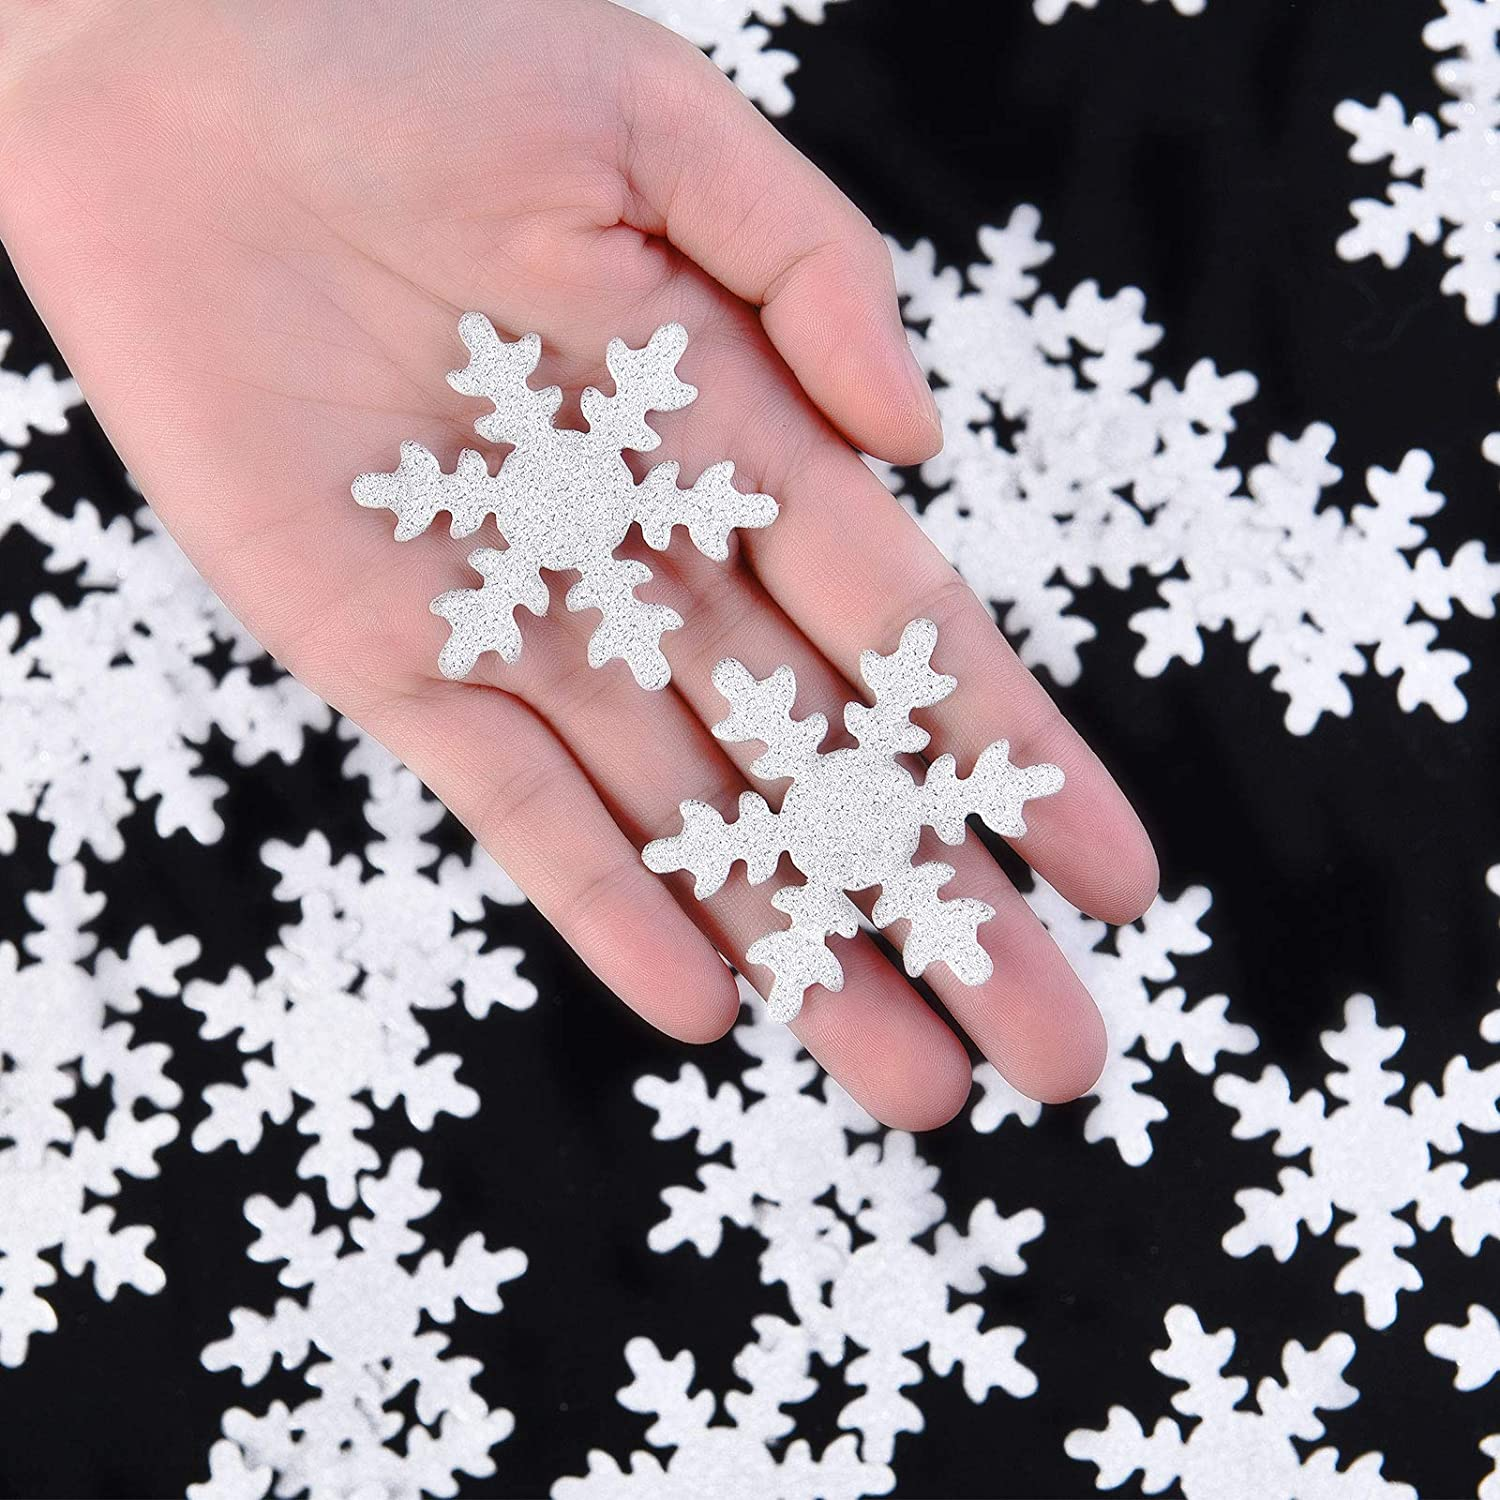 100 Pieces Snowflake Confetti Double-sided Sprinkles Christmas S